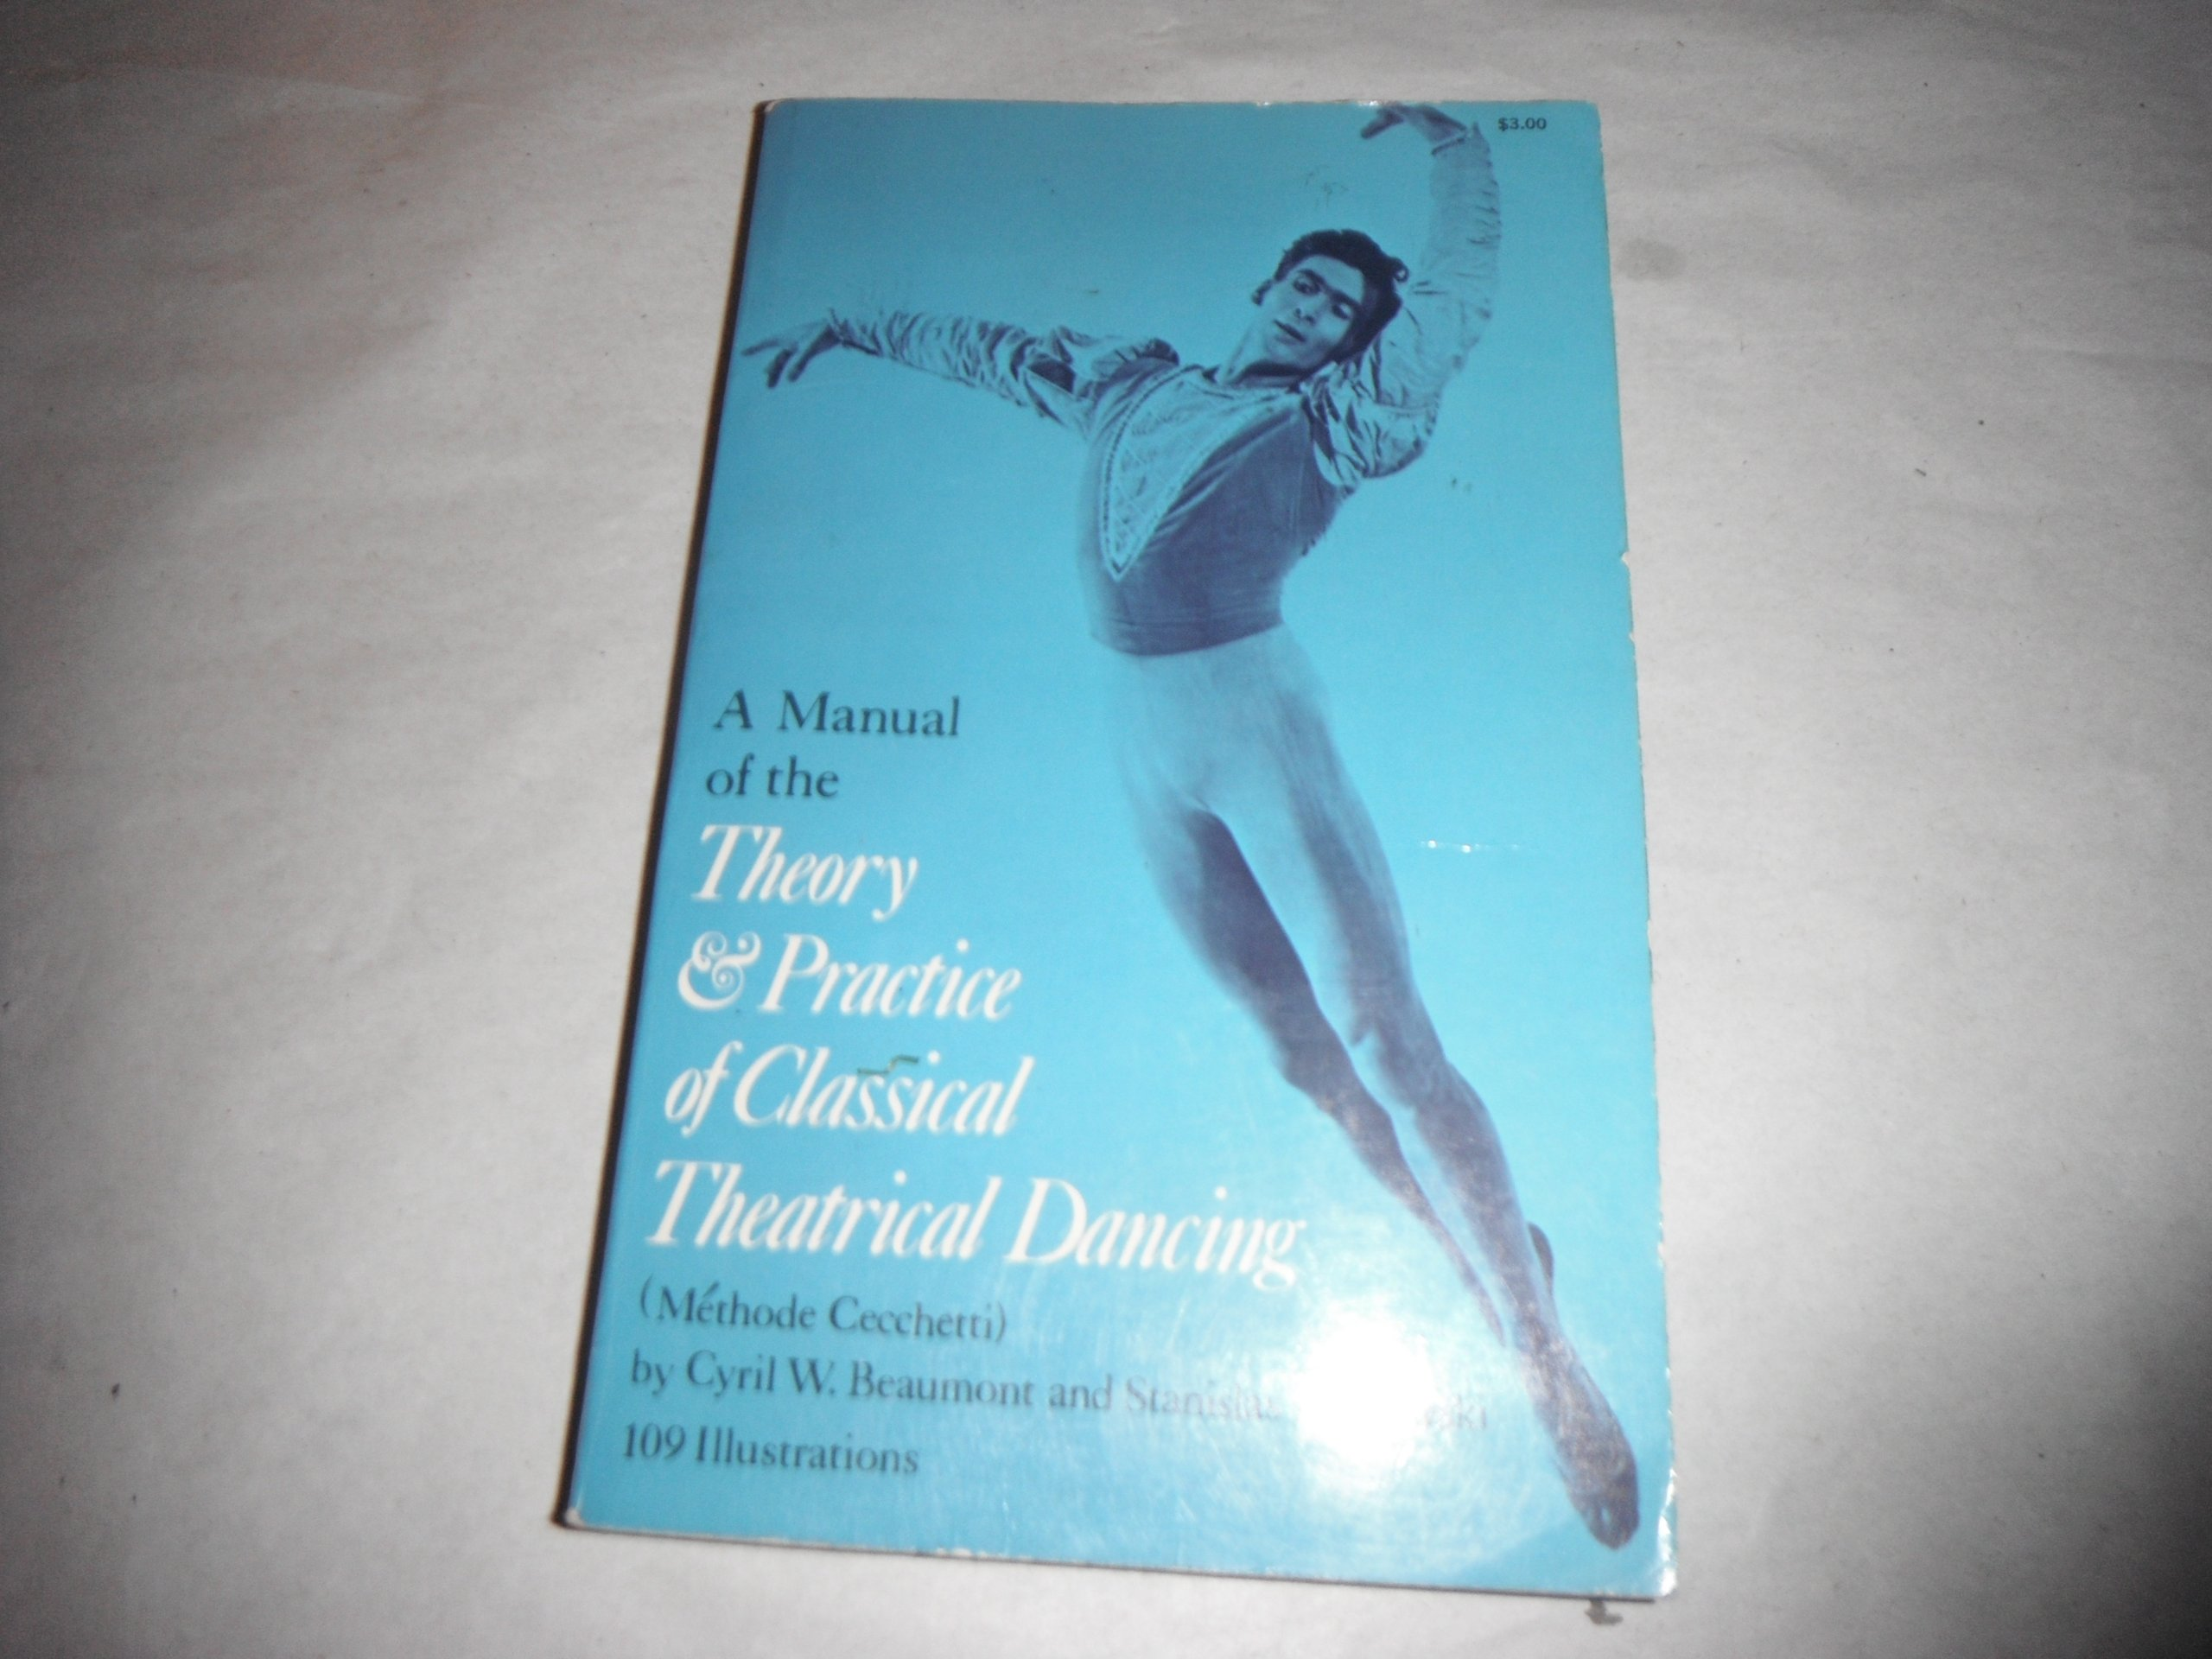 A manual of the theory and practice of classical theatrical dancing  (méthode Cecchetti): Cyril W Beaumont: 9780486232232: Amazon.com: Books